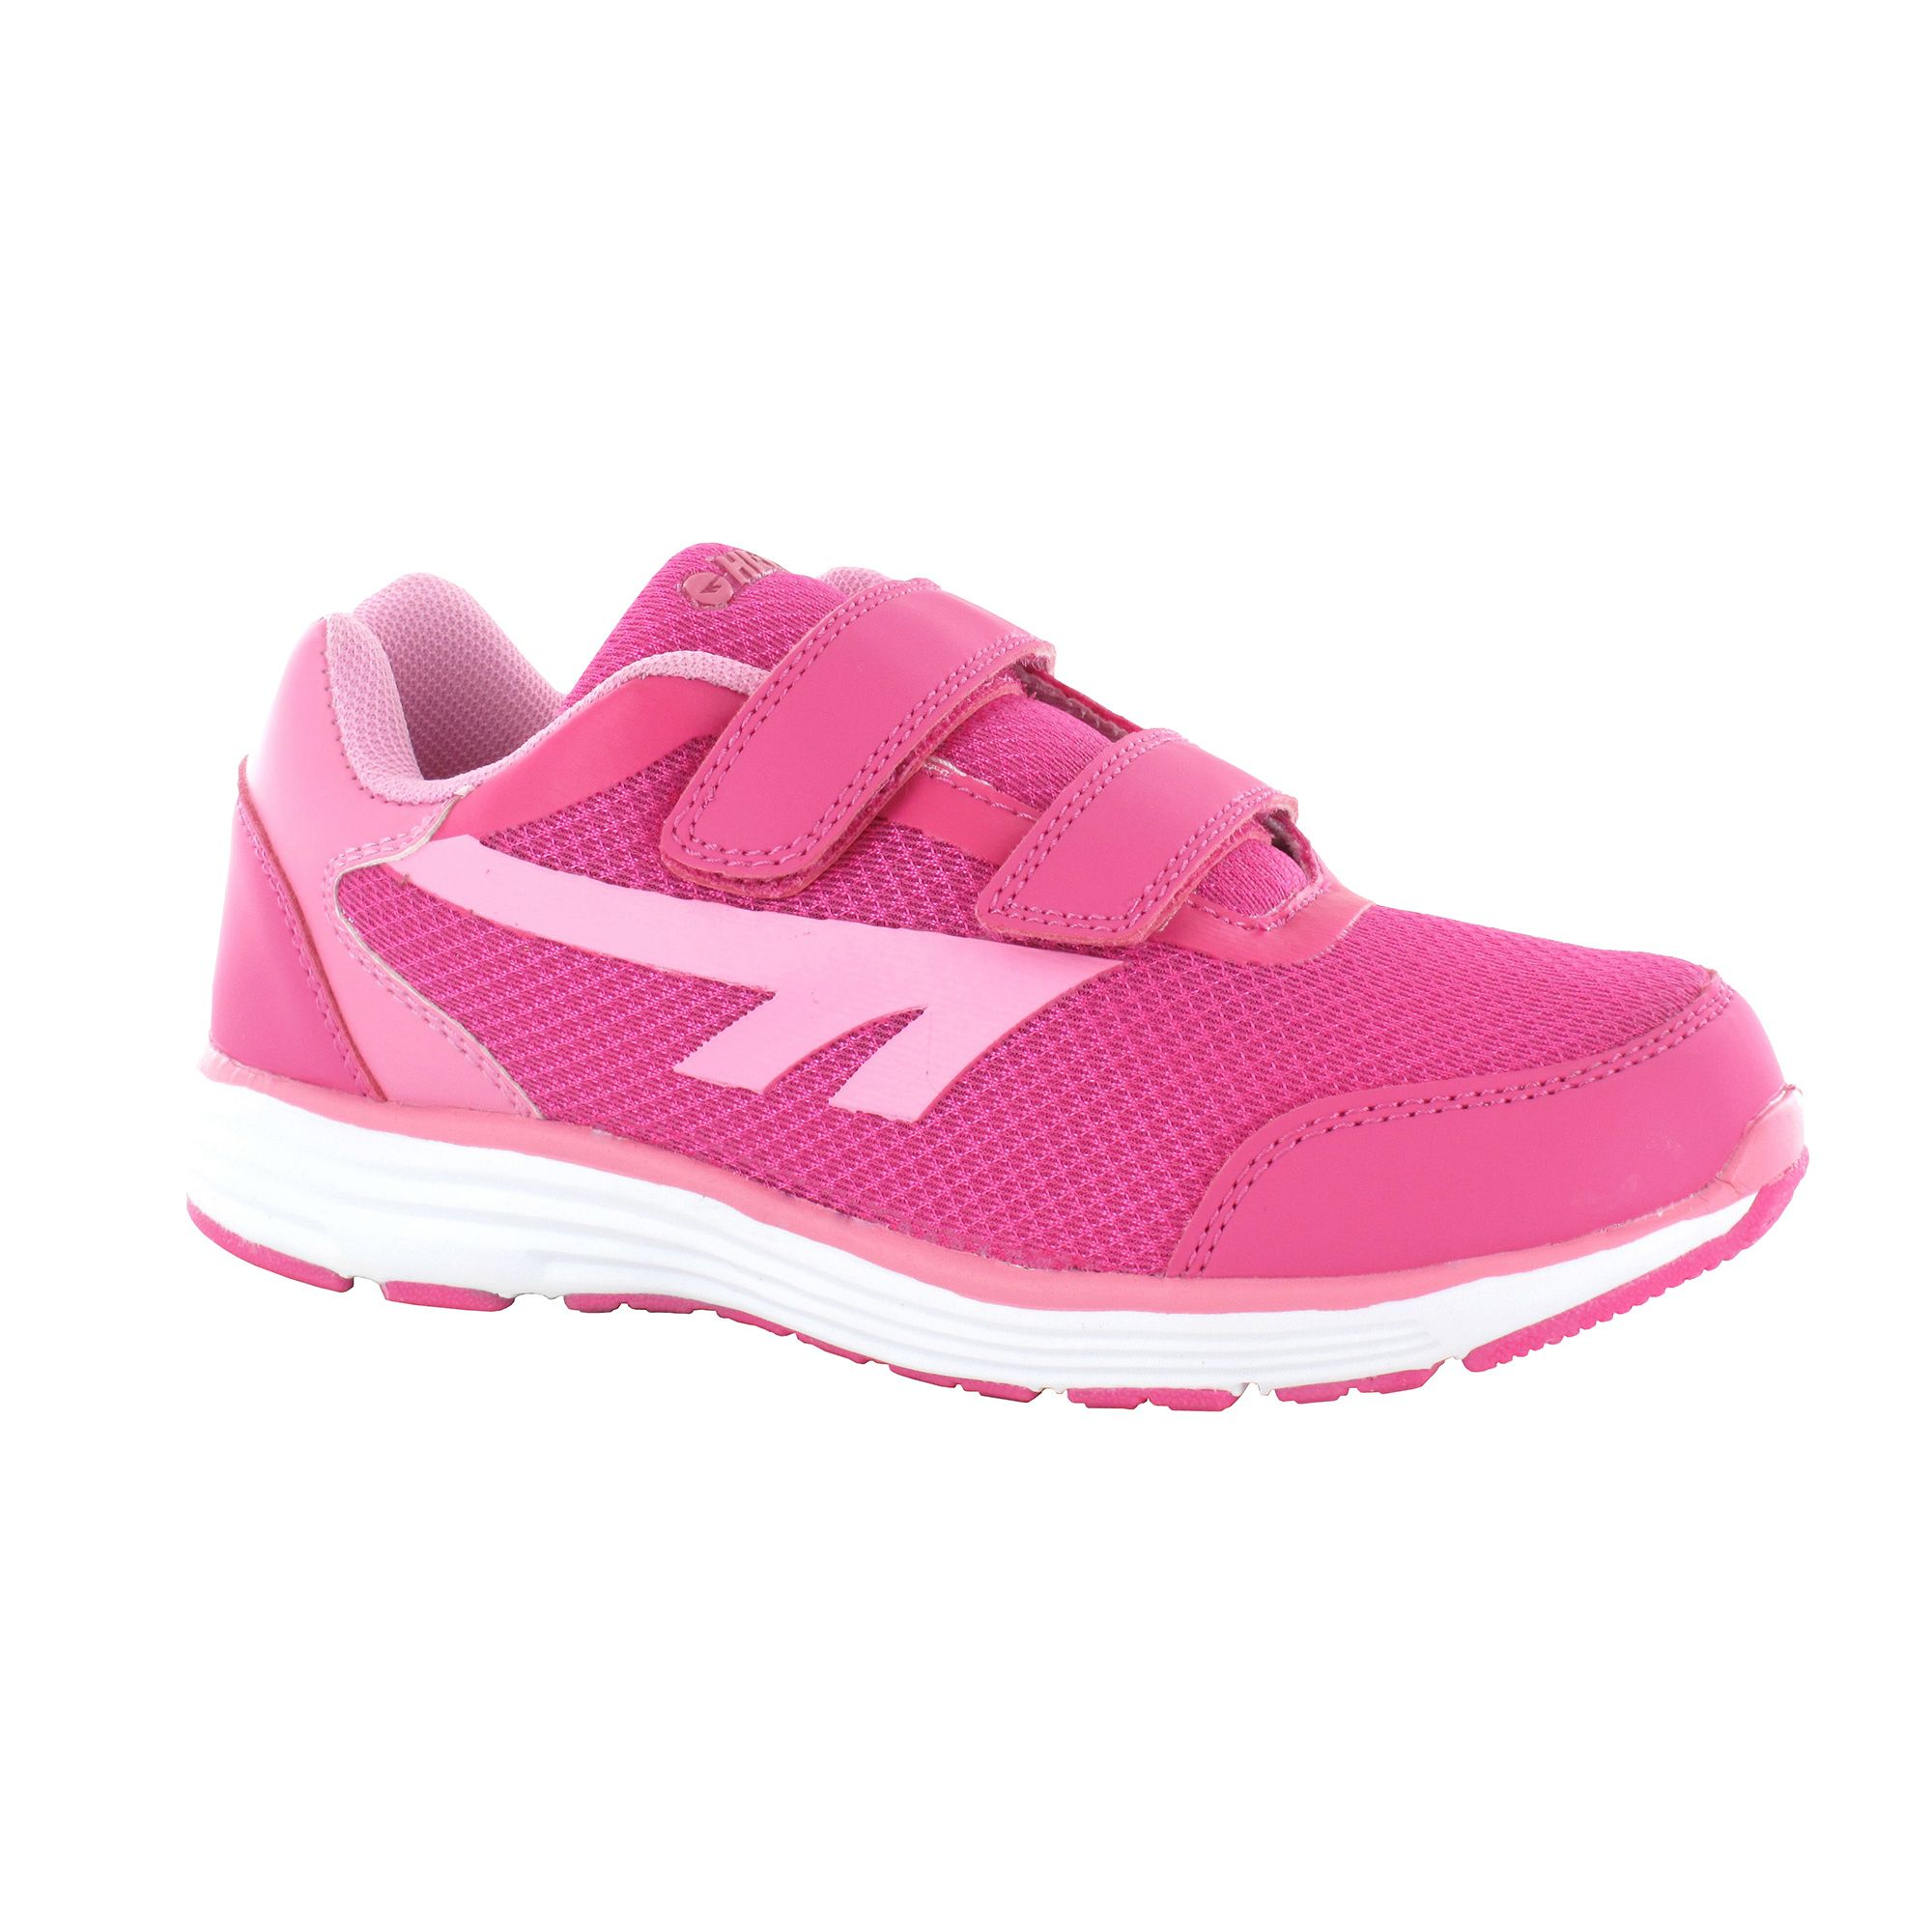 Can I Wear Running Shoes For Squash